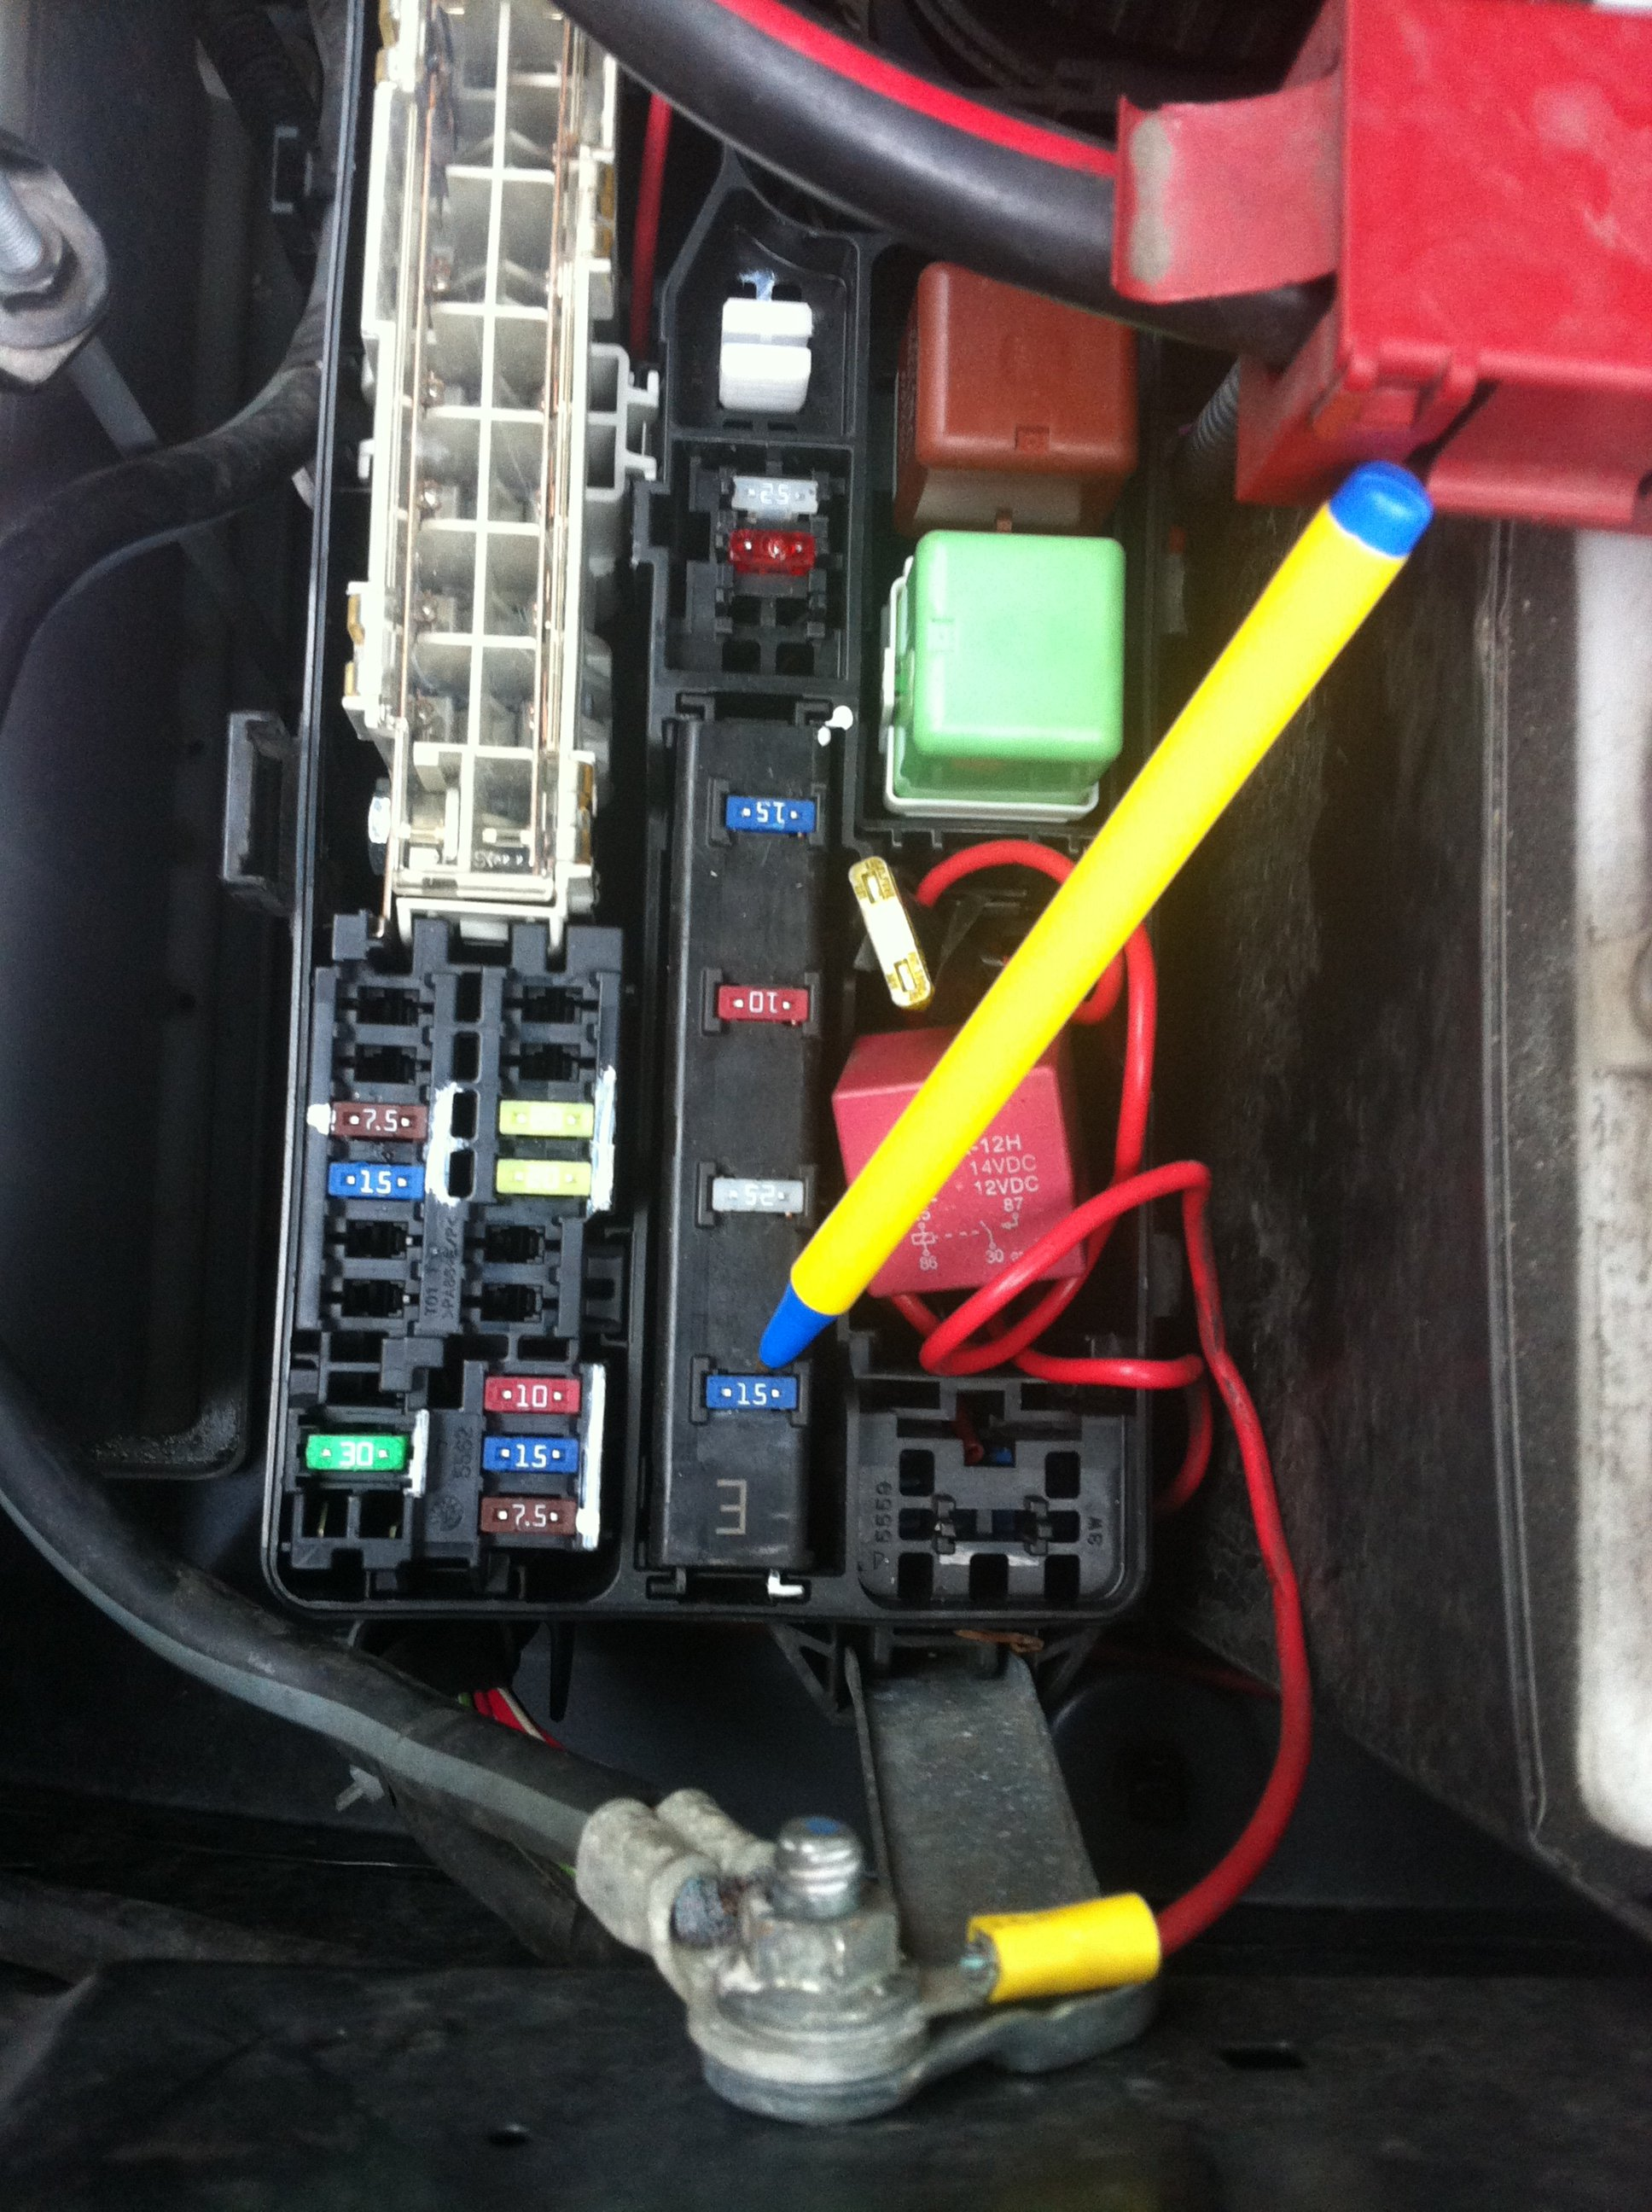 Toyota Hilux Fuse Box Diagram | Wiring Diagram on 2014 nissan altima wiring diagram, 2014 nissan titan wiring diagram, 2014 kia optima wiring diagram, 2014 ford fiesta wiring diagram, 2014 toyota sienna wiring diagram, 2014 mercedes sprinter wiring diagram, 2014 mazda 6 wiring diagram, 2014 nissan pathfinder wiring diagram, 2014 jeep cherokee wiring diagram, 2014 dodge ram 3500 wiring diagram, 2014 gmc acadia wiring diagram, 2014 ford super duty wiring diagram, 2014 vw beetle wiring diagram, 2014 vw jetta wiring diagram, 2014 honda accord wiring diagram, 2013 toyota avalon wiring diagram, 2014 jeep compass wiring diagram, 2014 dodge grand caravan wiring diagram, 2014 jeep patriot wiring diagram, 2014 honda odyssey wiring diagram,